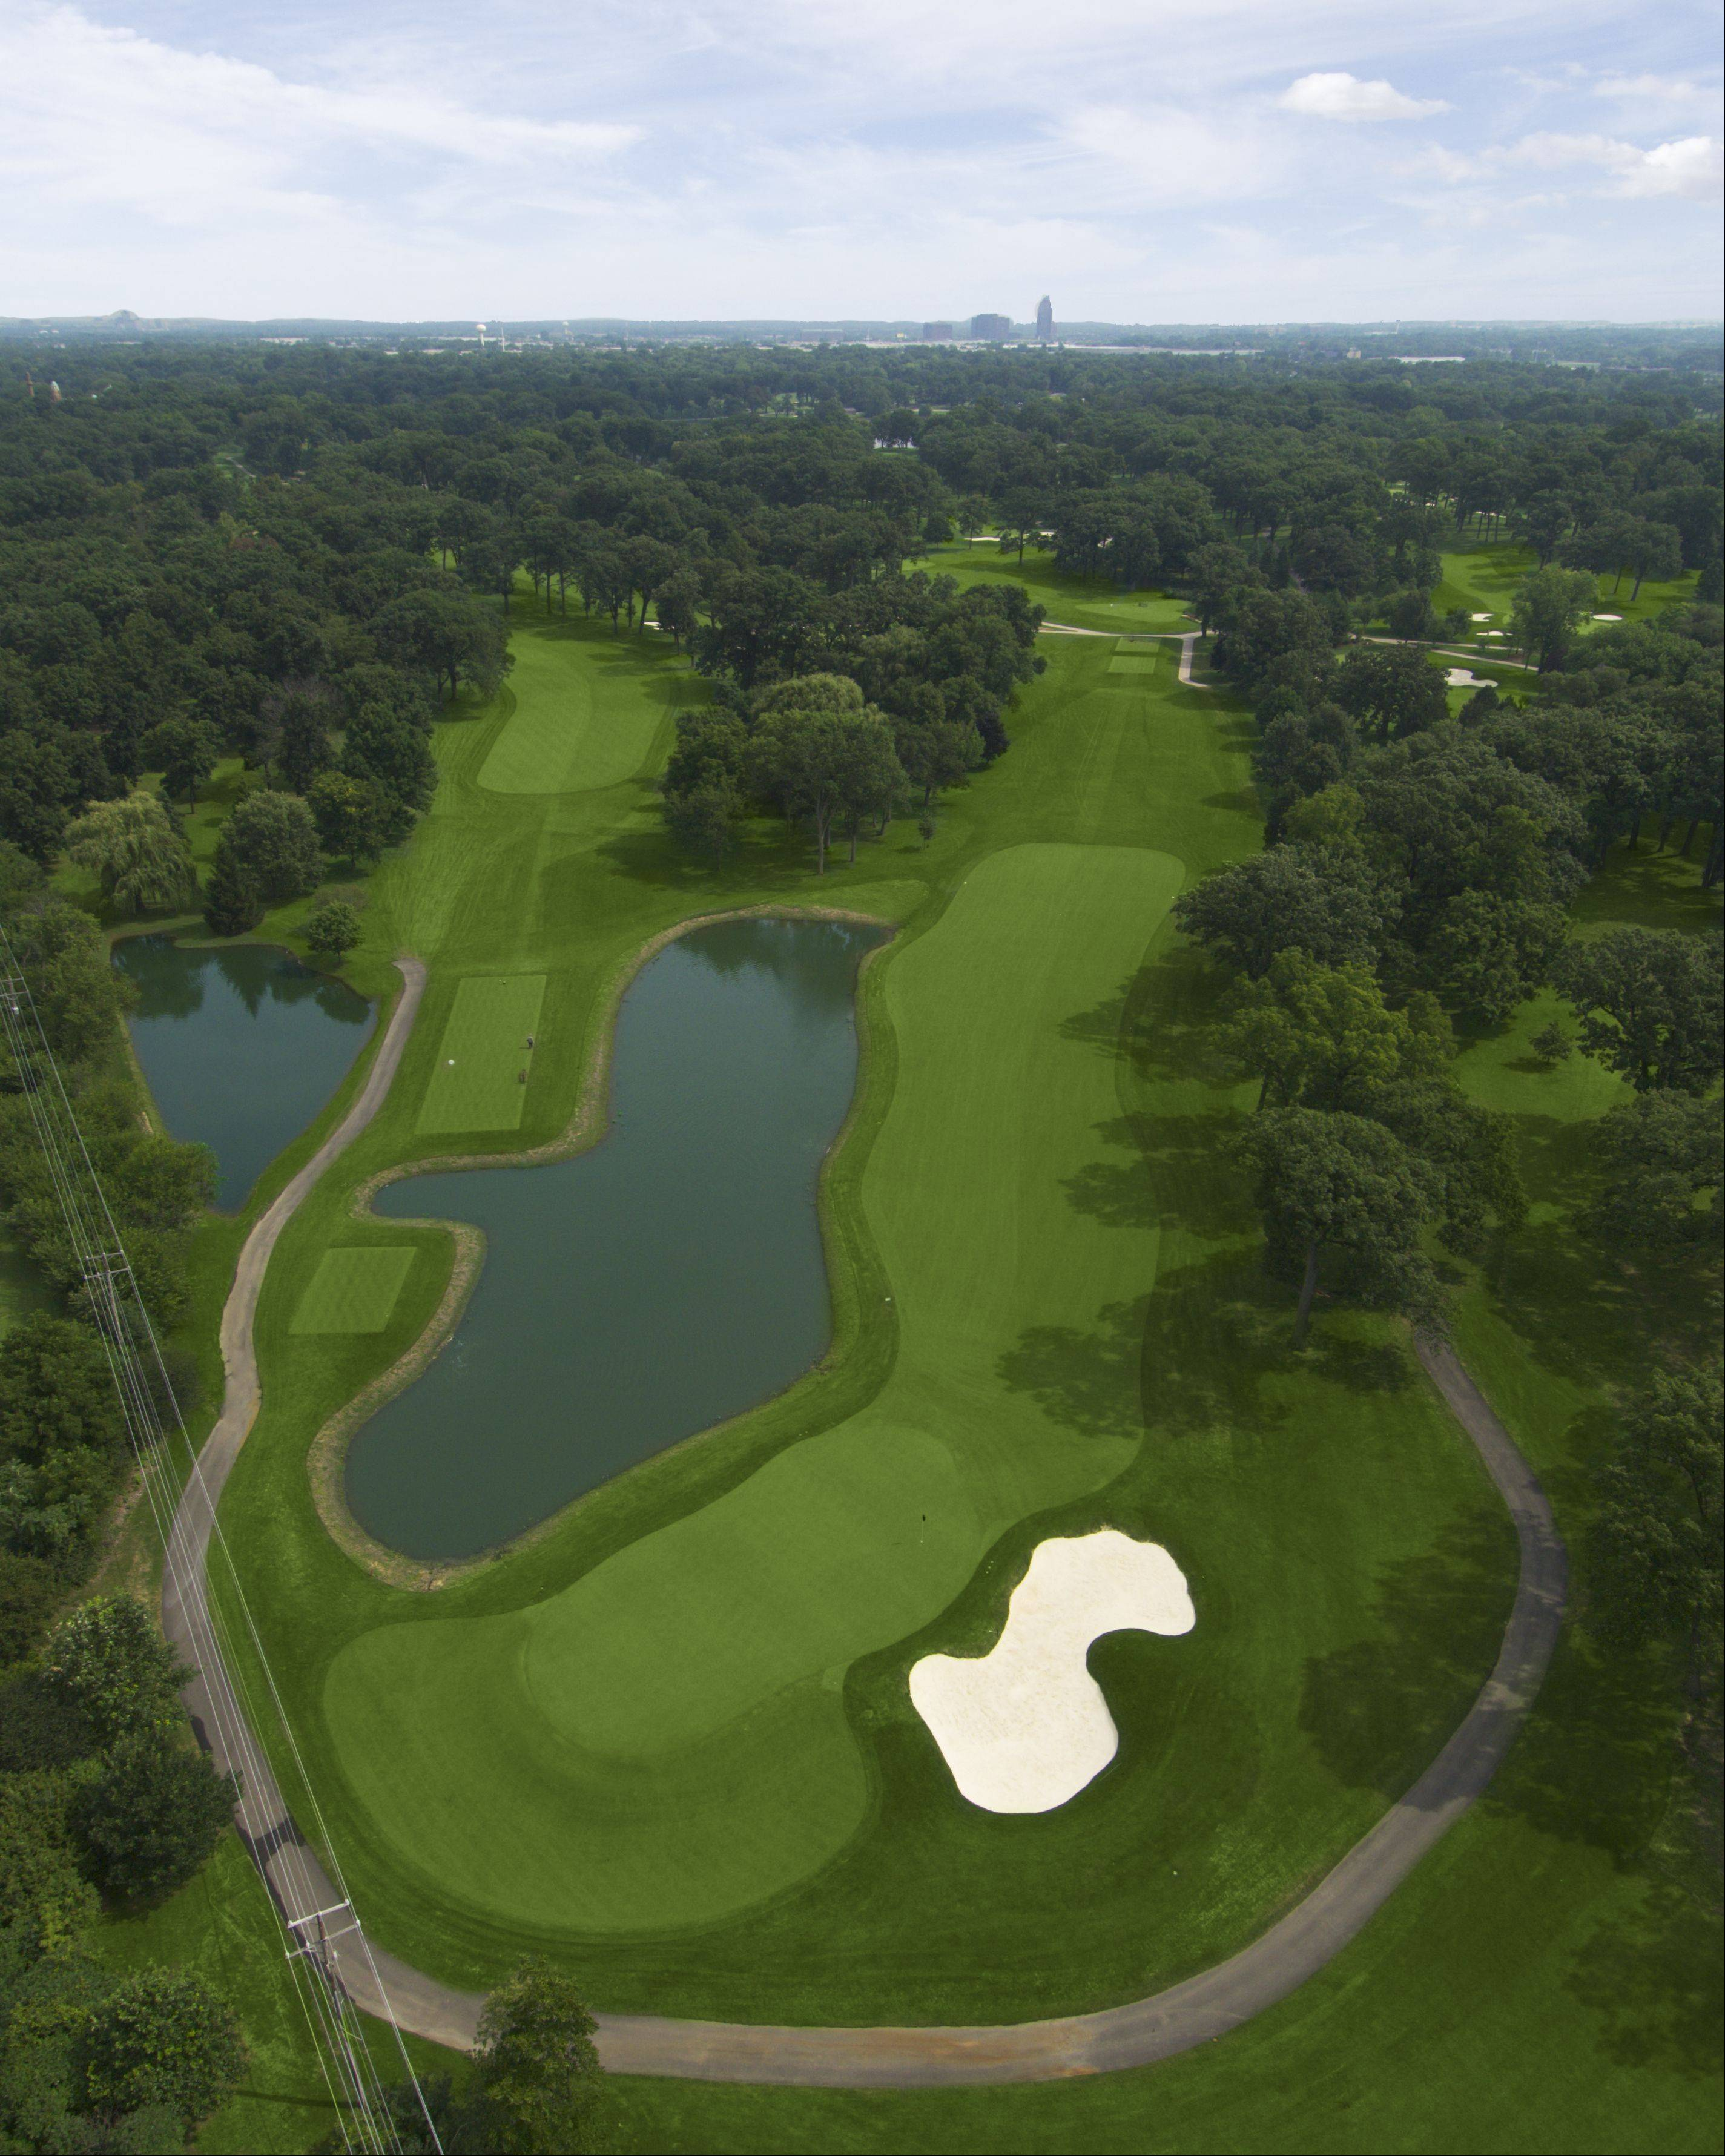 Hole No. 15 at Medinah is a driveable Par 4, but Phil Mickelson expects players to lay up for the easy birdie.